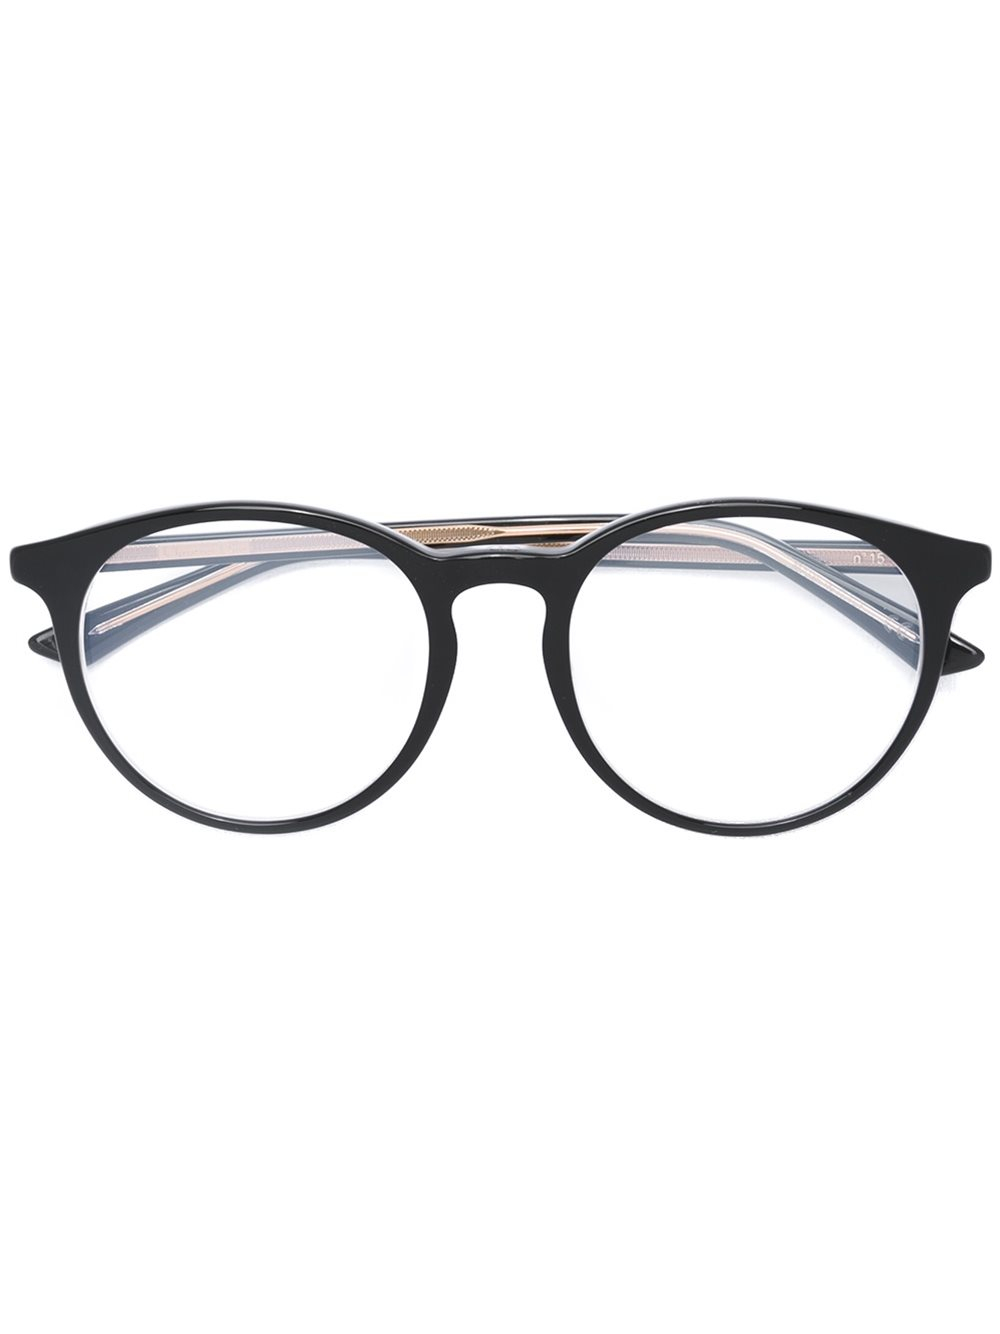 Glasses Metal Frame Dior : Dior Round Frame Glasses in Black Lyst